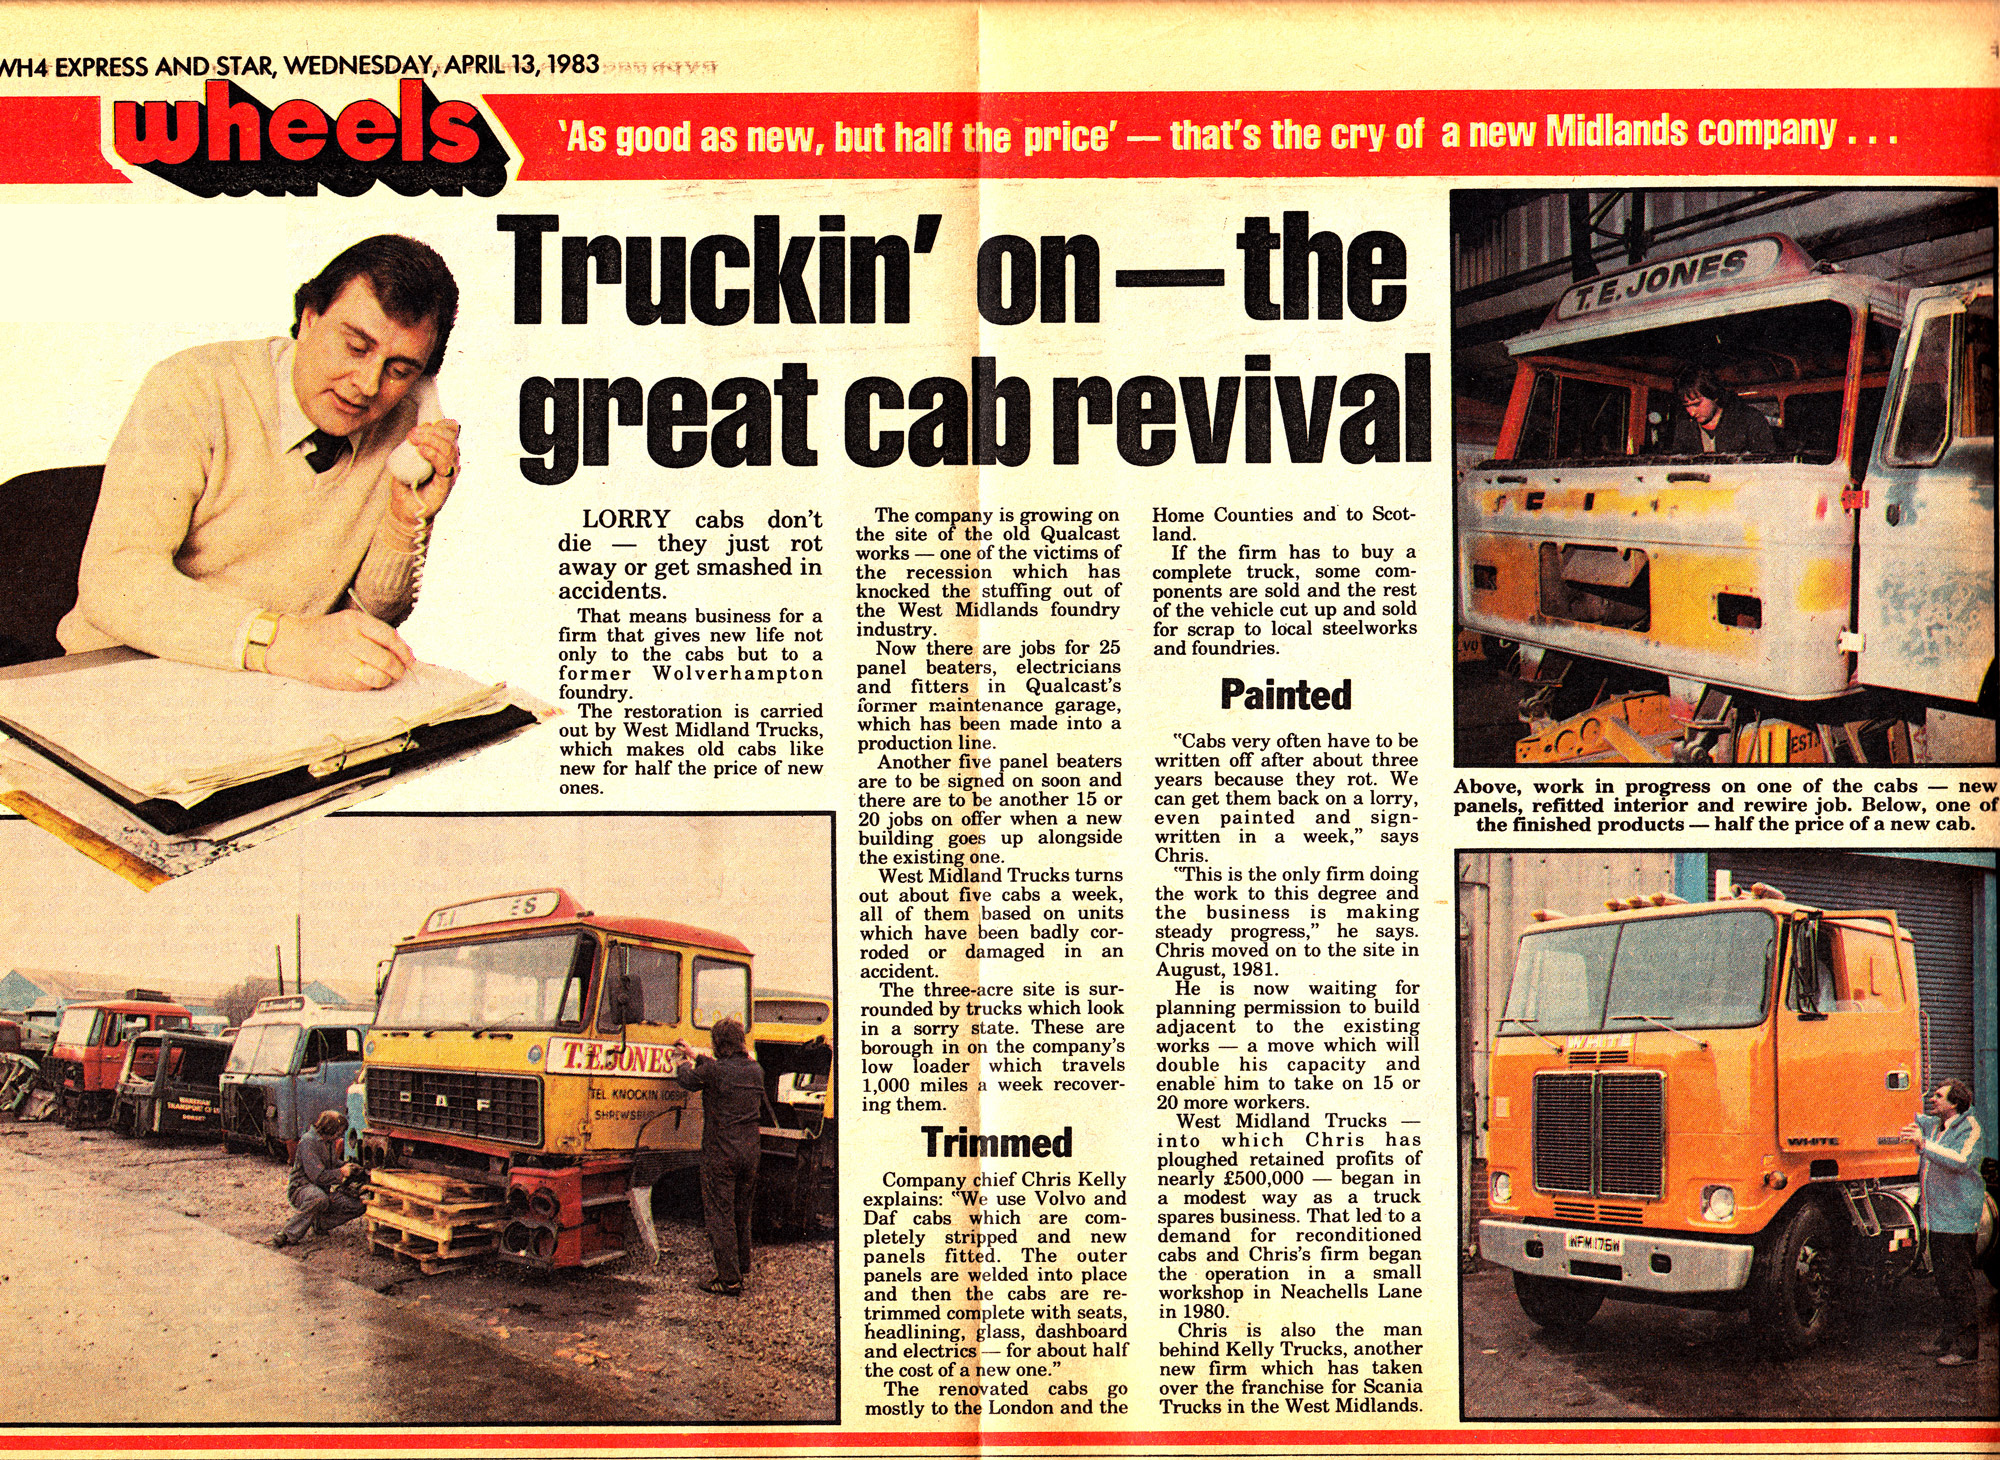 Express & Star editorial in 1983 about Midlands Trucks (Keltruck) supplying recycled lorry cabs.